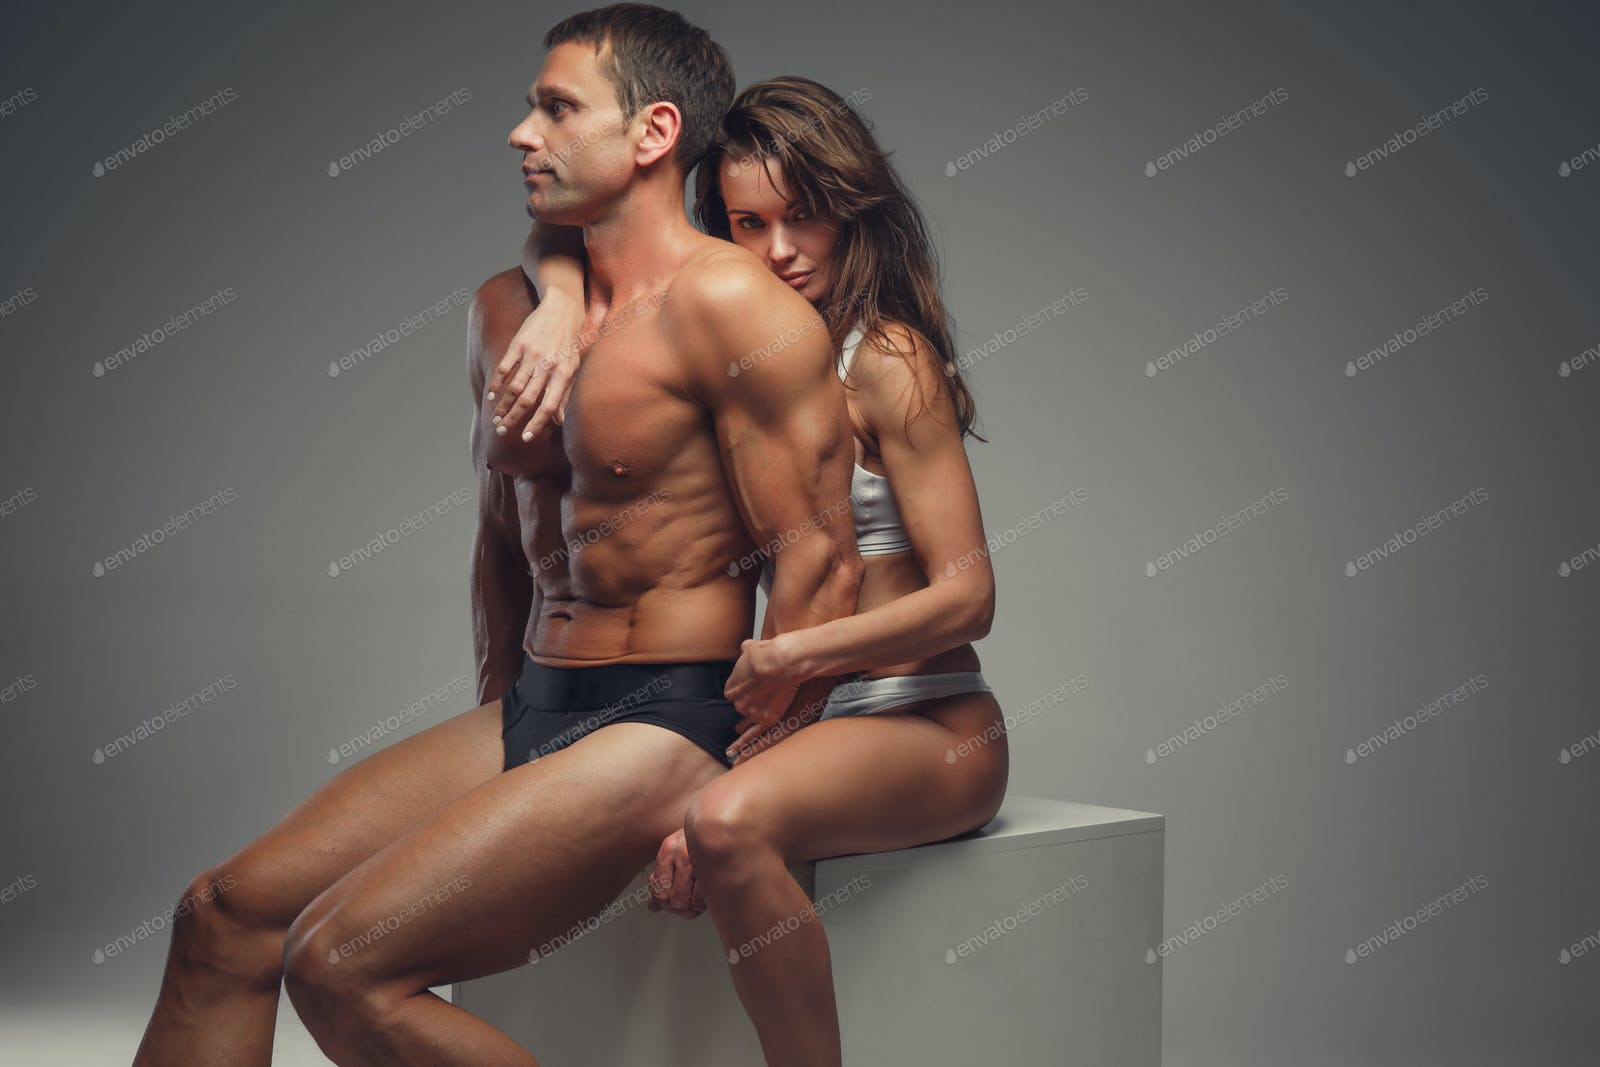 Naked and athletic Naked Athletic Couple Posing In Studio Photo By Fxquadro On Envato Elements